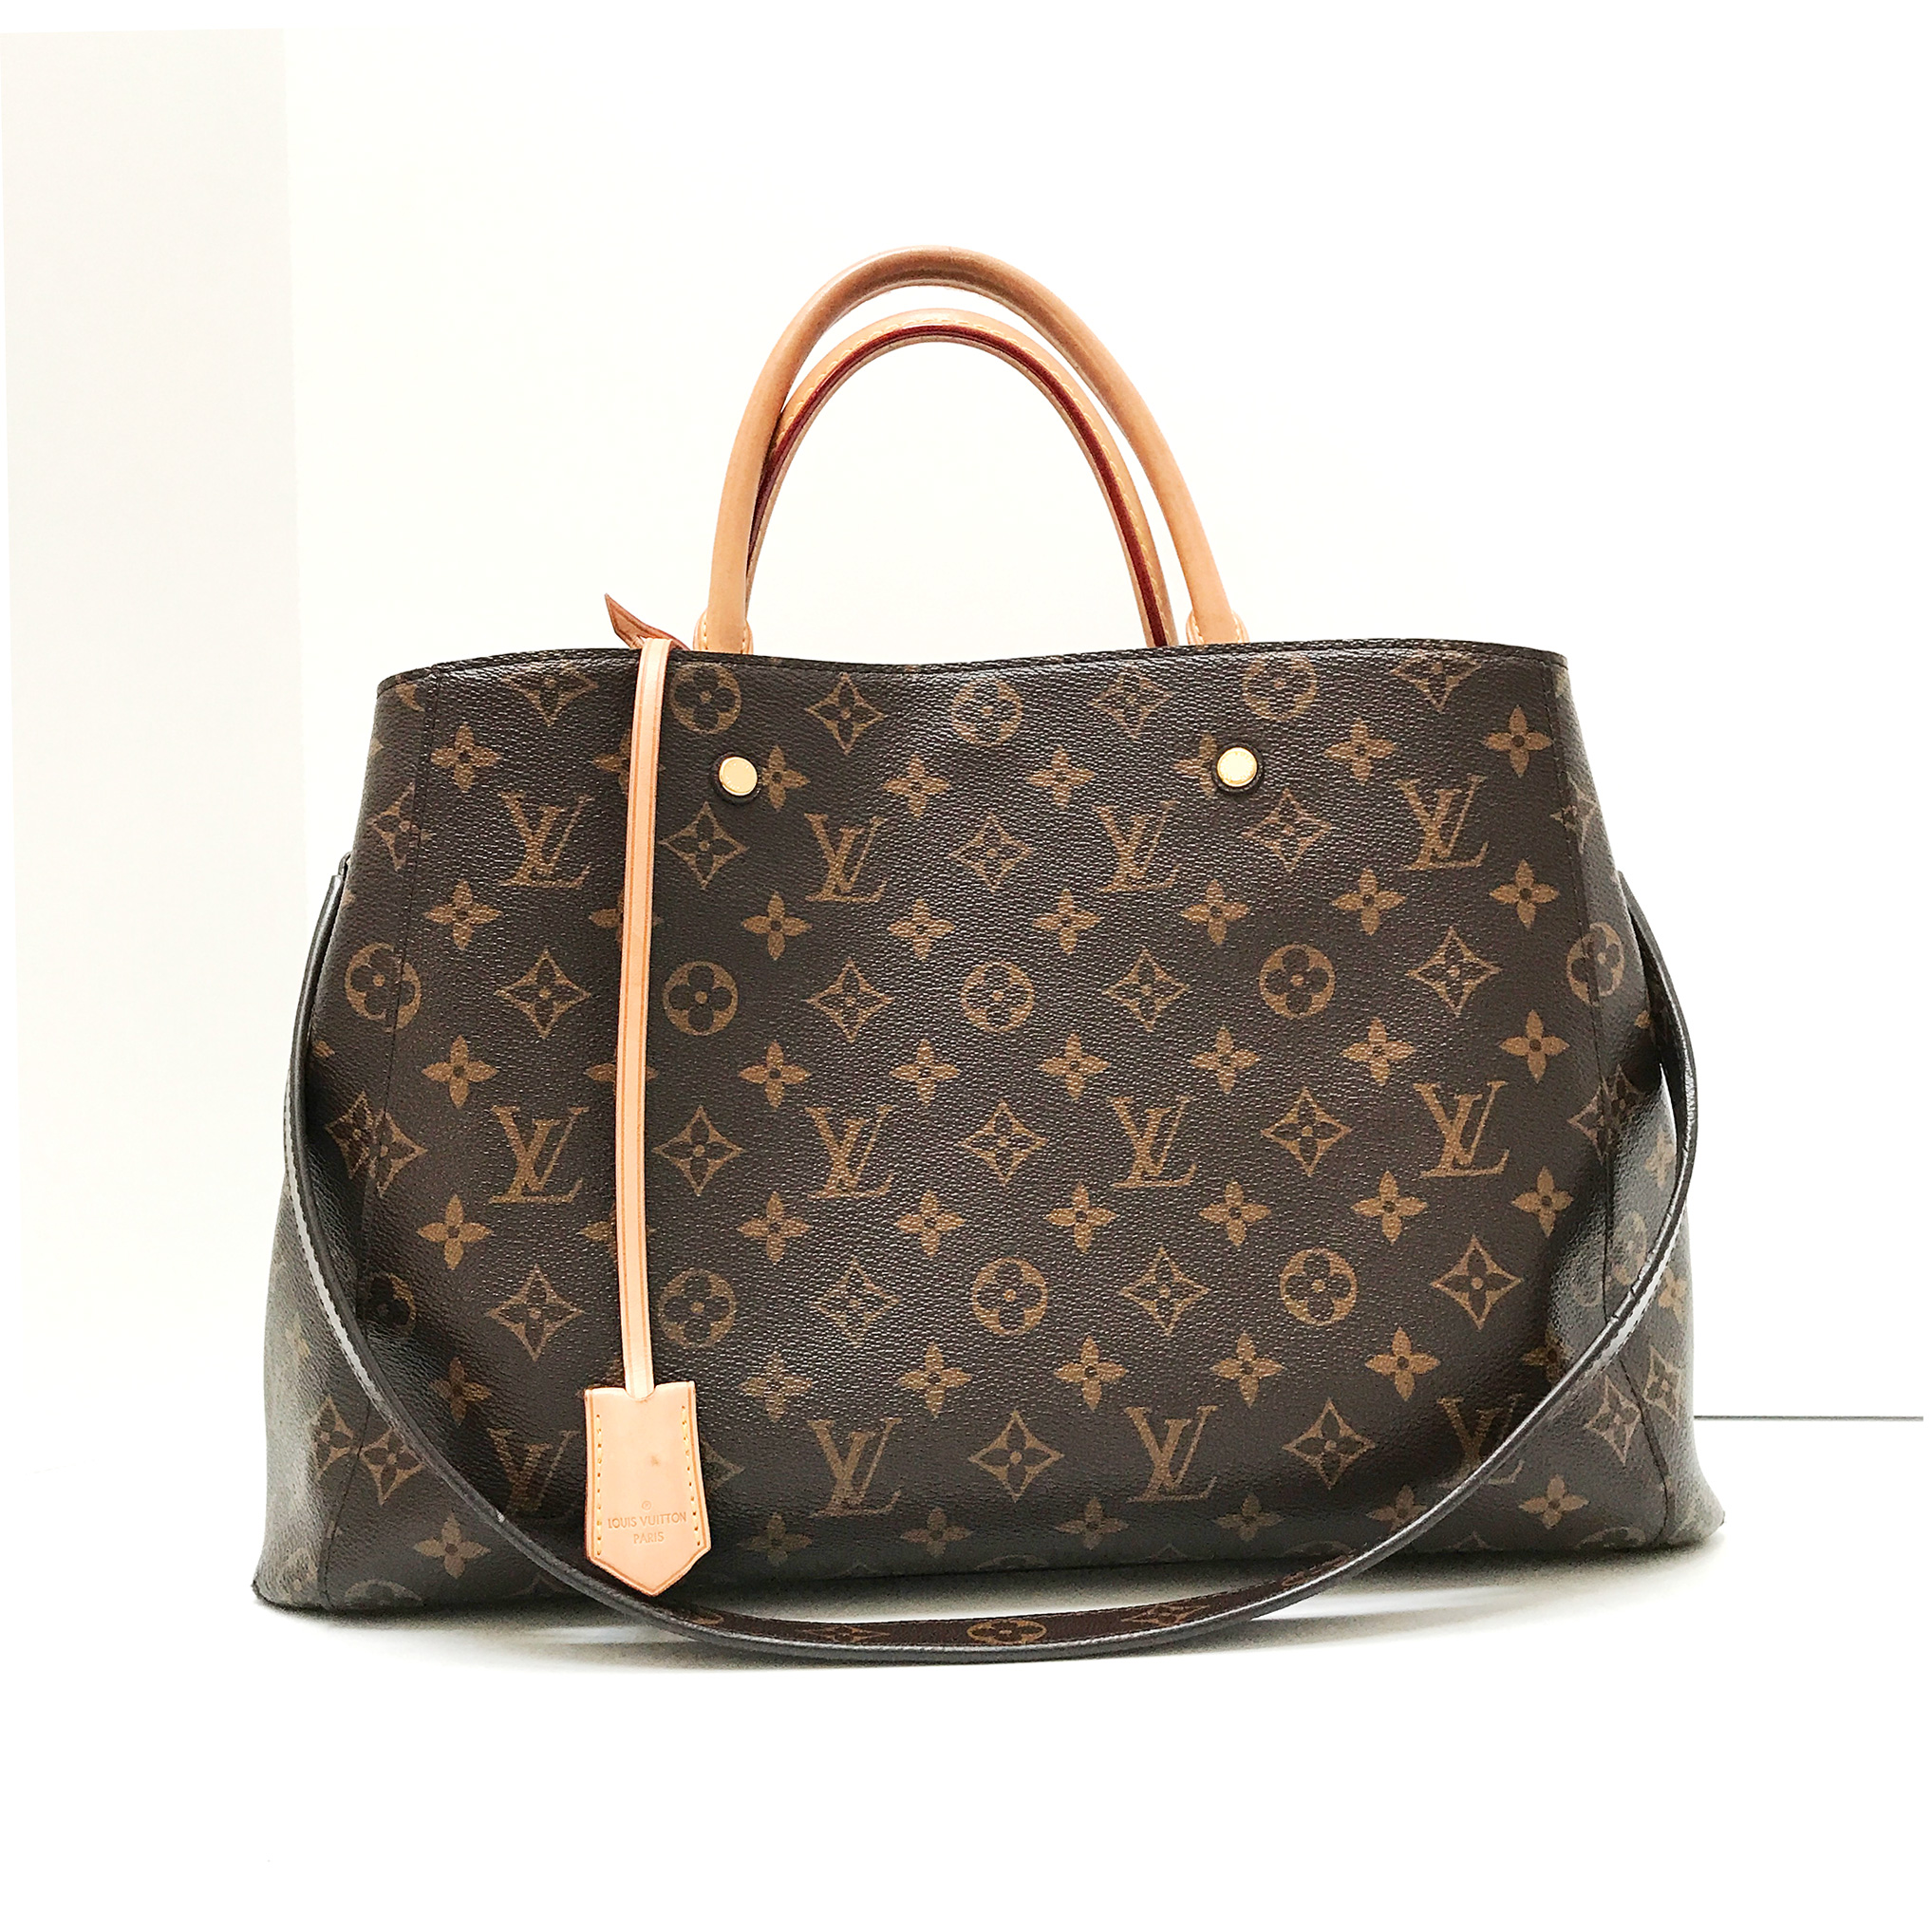 Louis Vuitton Montaigne GM Tote Bag Monogram Canvas with Shoulder Strap 66bd7be116514